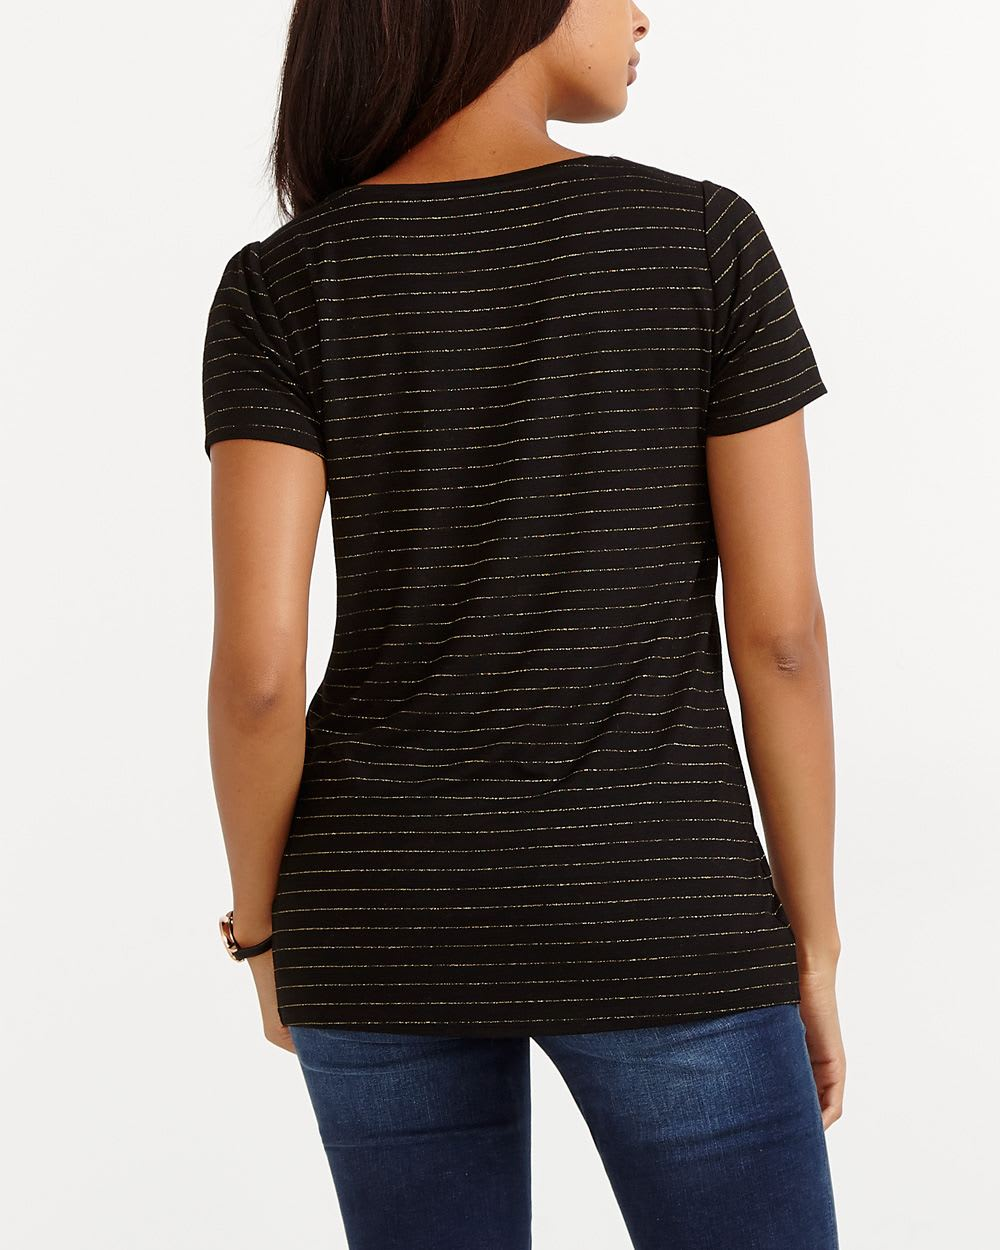 Metallic Fiber Striped Tee